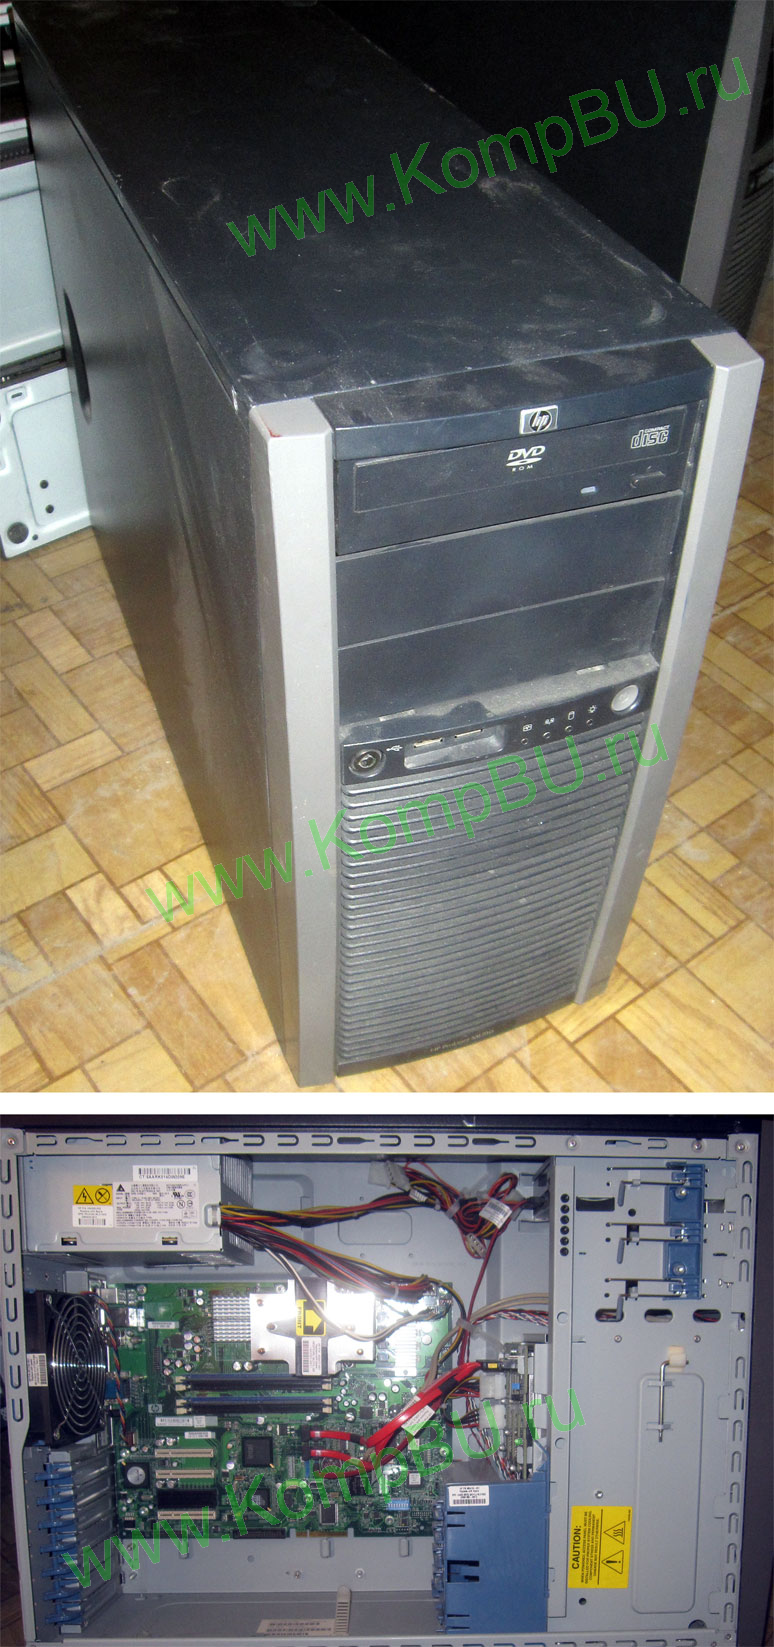 Б/У сервер HP Proliant ML310 G5 445333-421 (XEON 2x2.33GHz /1024Mb DDR2 ECC /2x160Gb /DVDROM /2xLAN 1G /410W ATX server case)